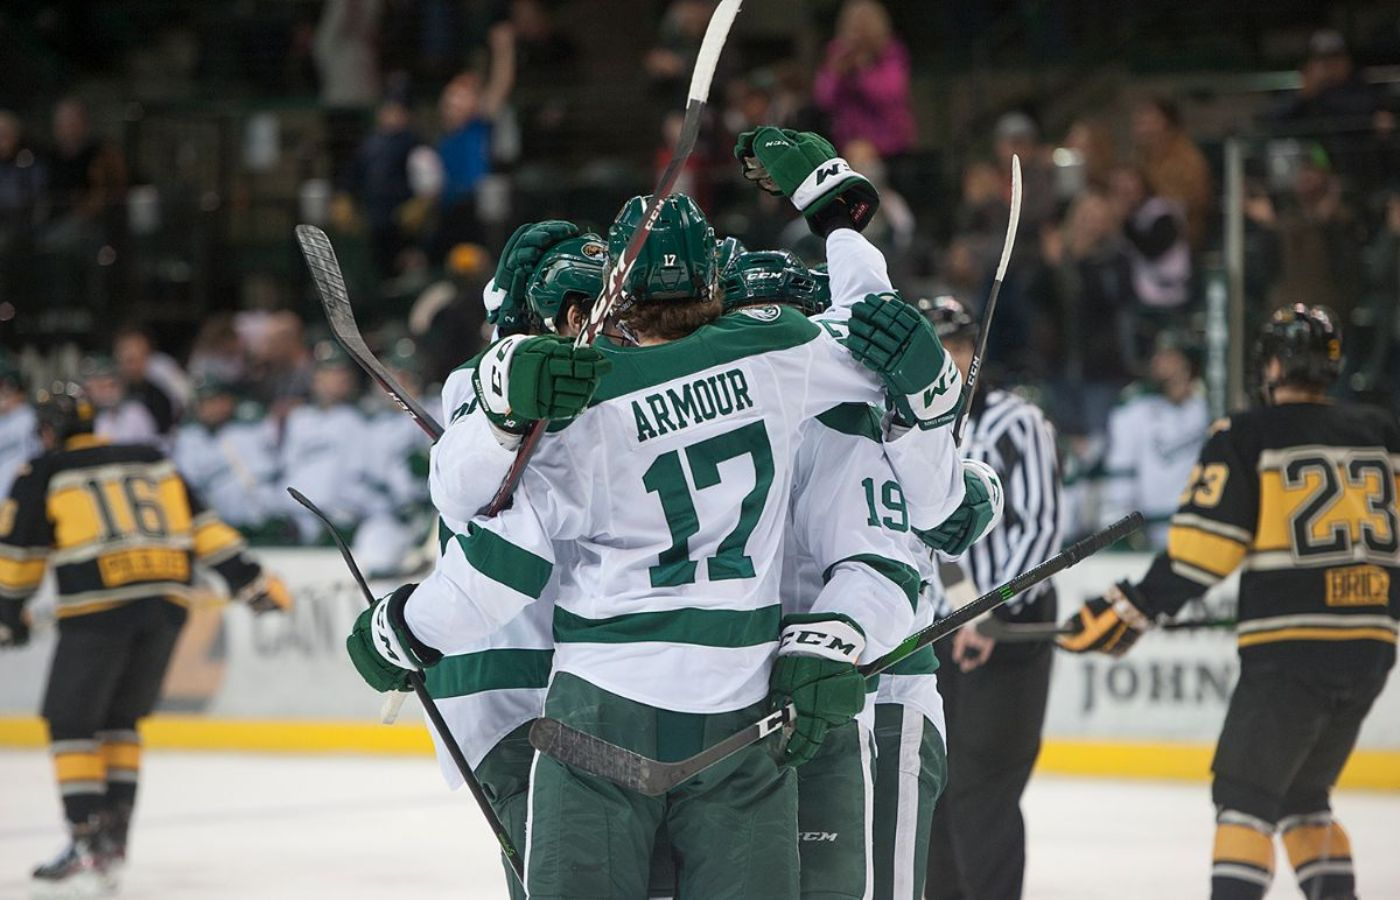 Bemidji State completes WCHA series sweep with 2-1 win at Michigan Tech